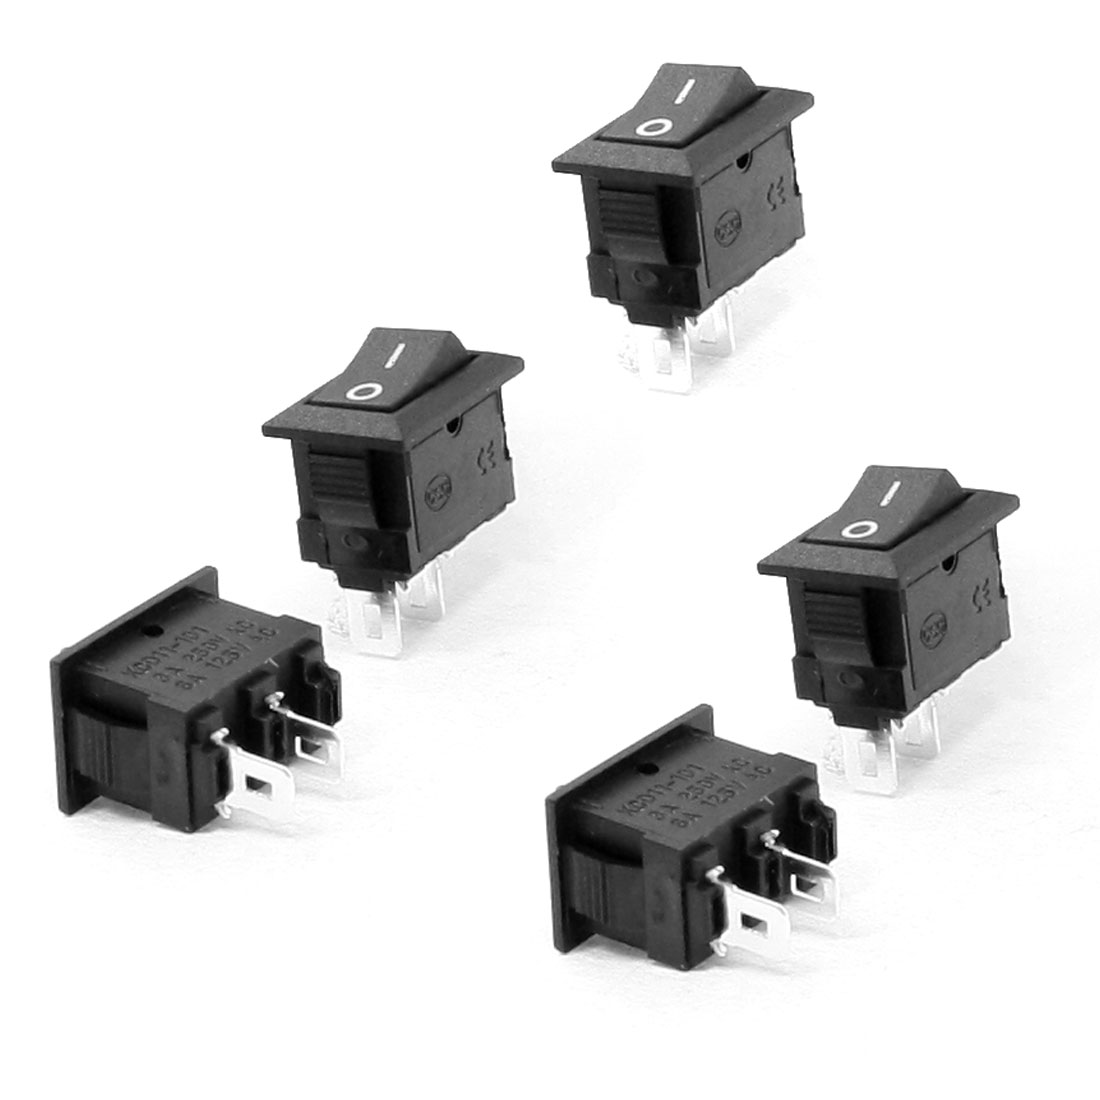 5 Pcs 2 Terminal SPST Black On/On Snap in Rocker Switch AC 250V/3A 125V/6A